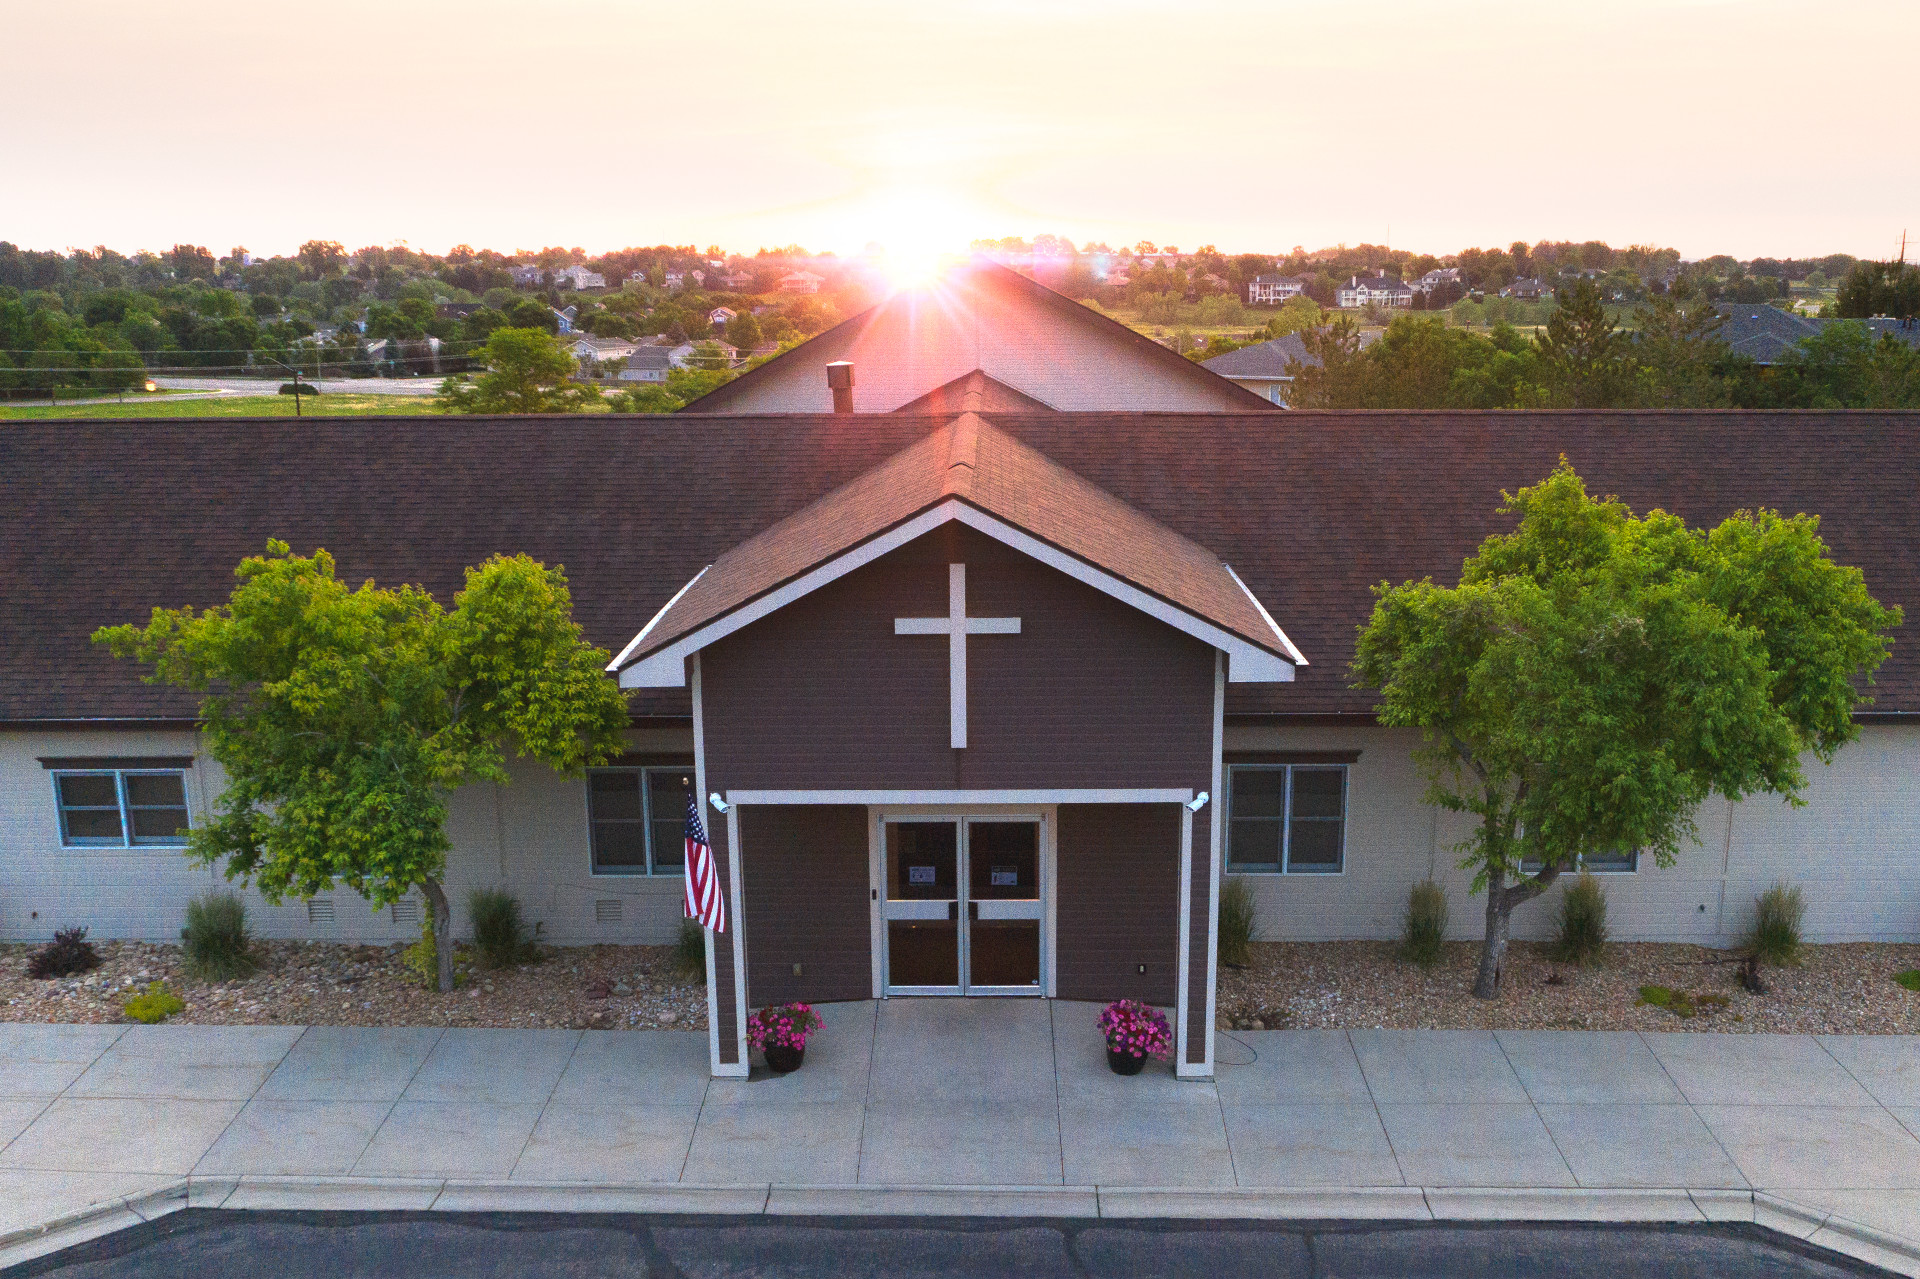 Church Roofing Services